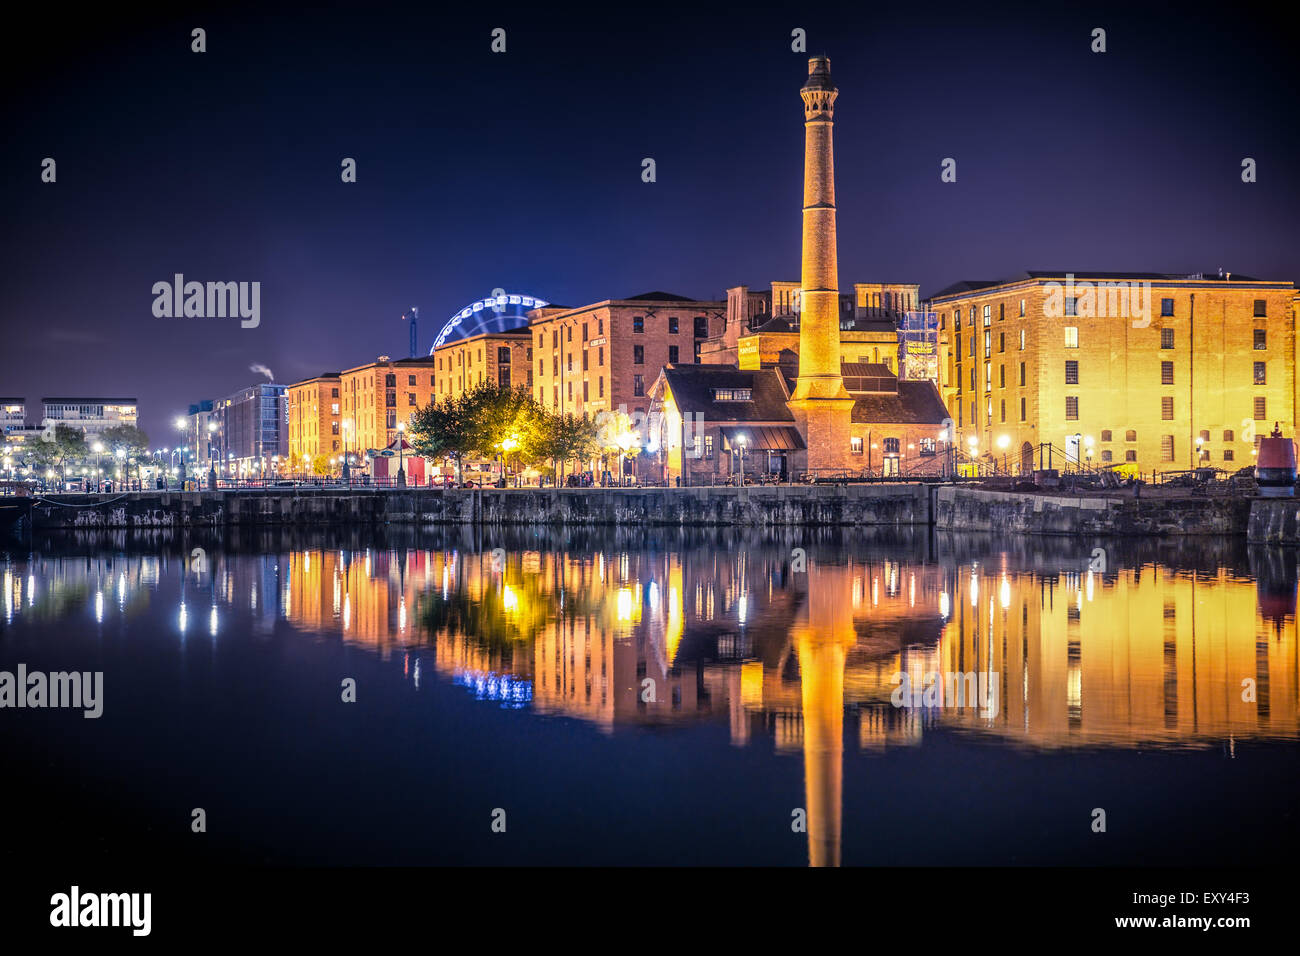 Liverpool United Kingdom waterfront skyline at night - Stock Image